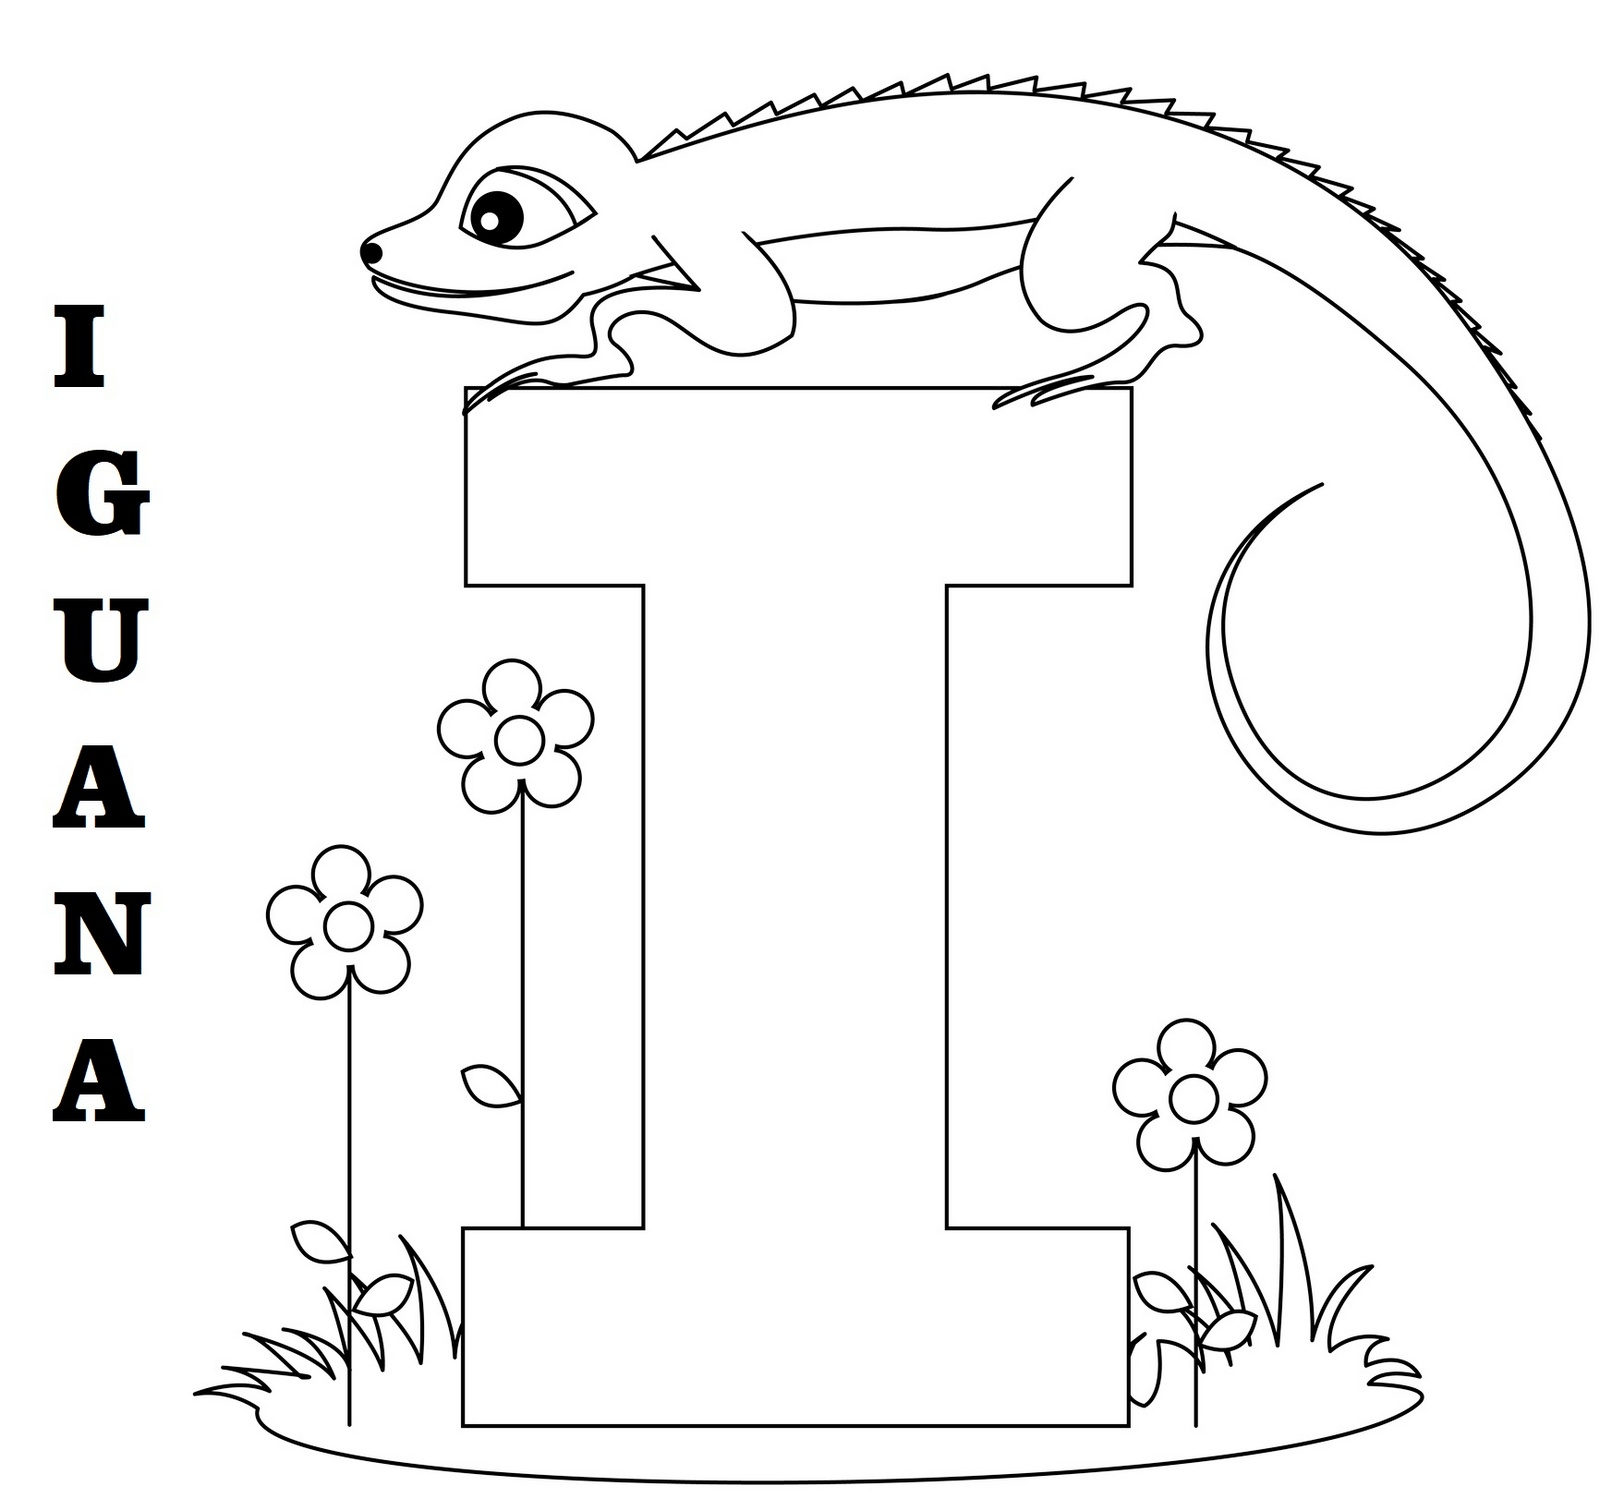 Letter I for Iguana Coloring Picture